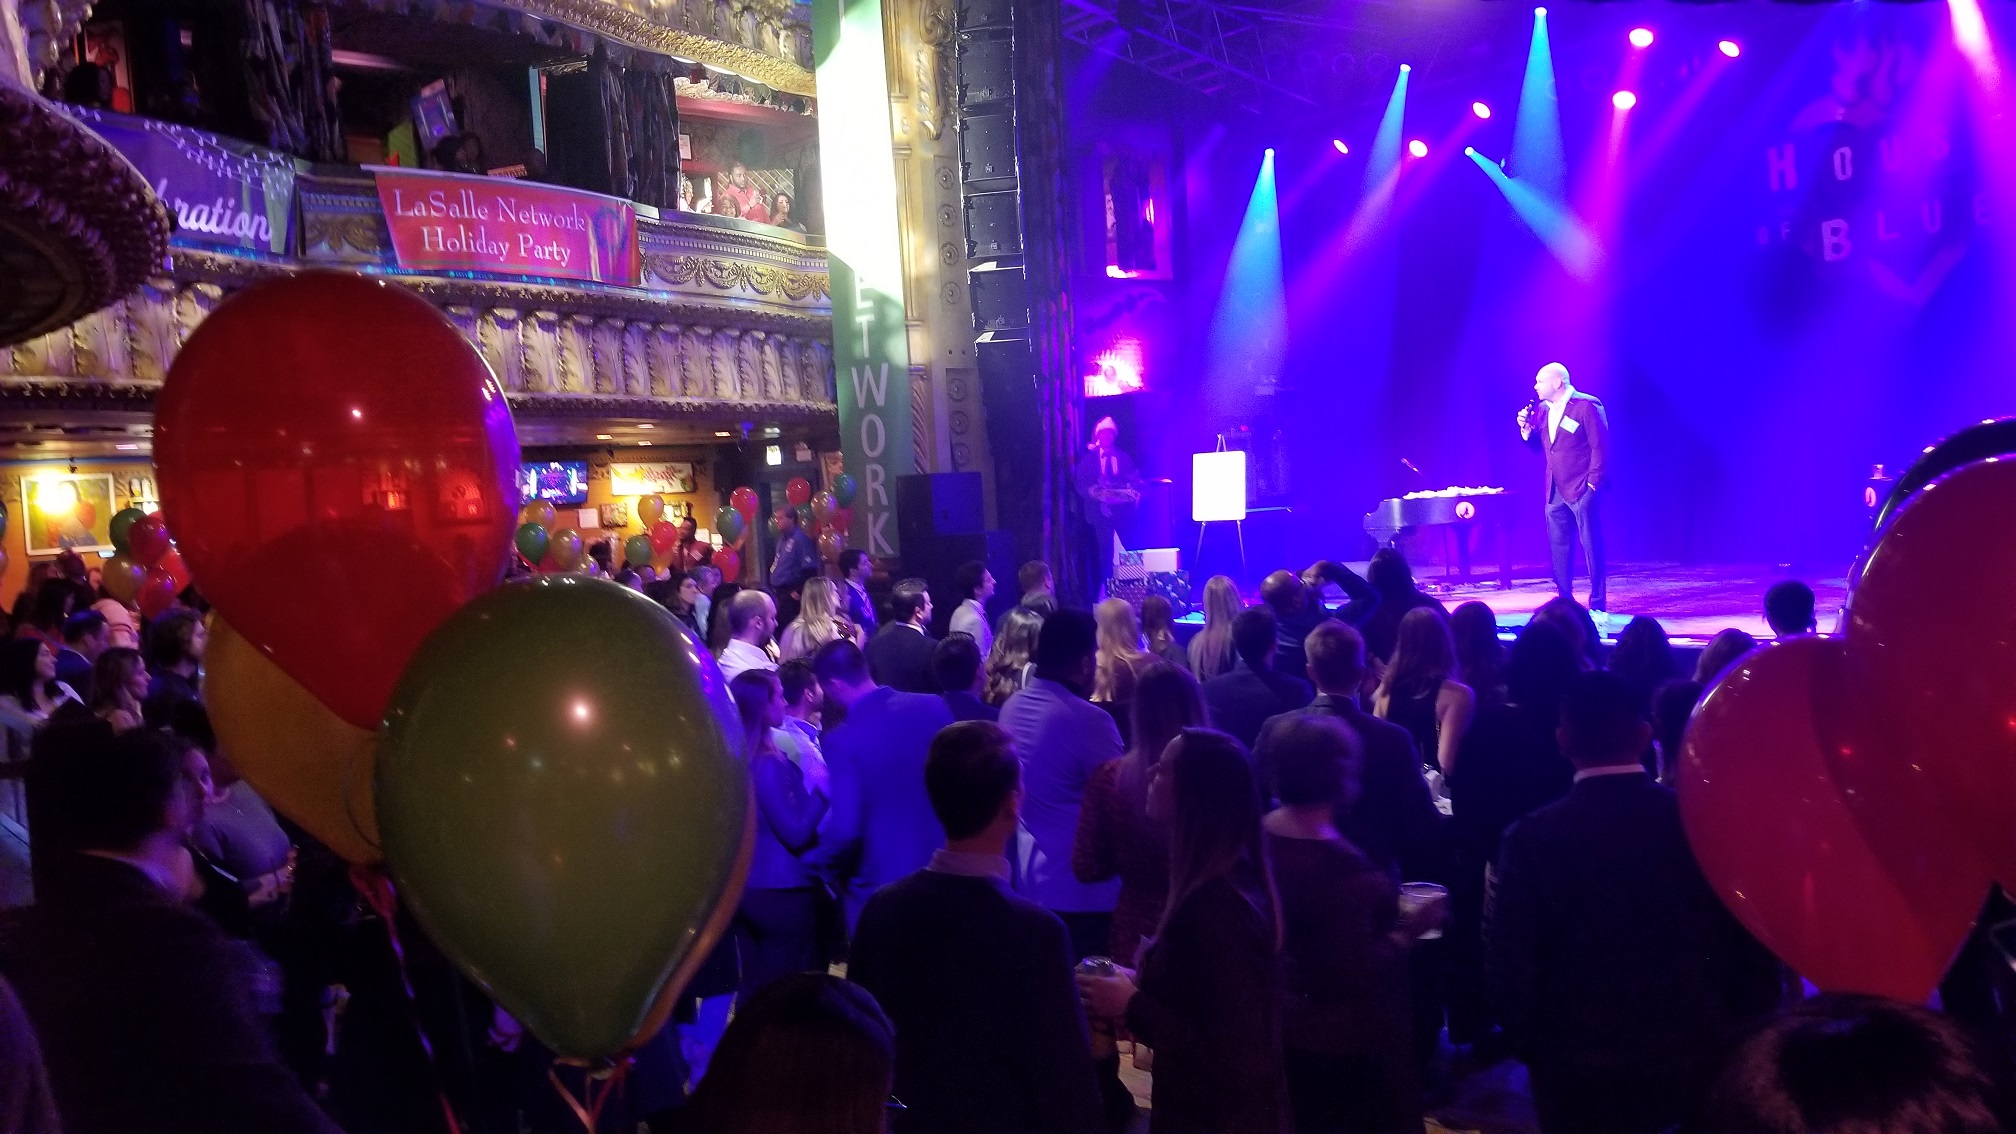 IMC attended the LaSalle Network 2019 Holiday Party, held at the House of Blues in downtown Chicago.